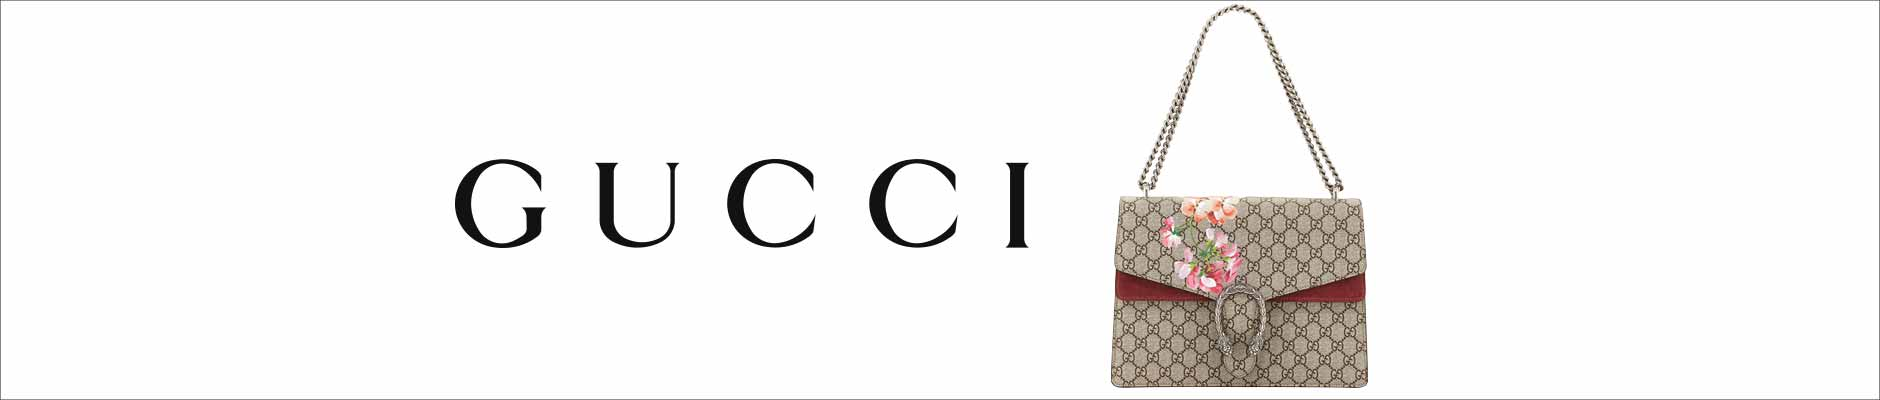 Gucci Runway Launch: Handbag